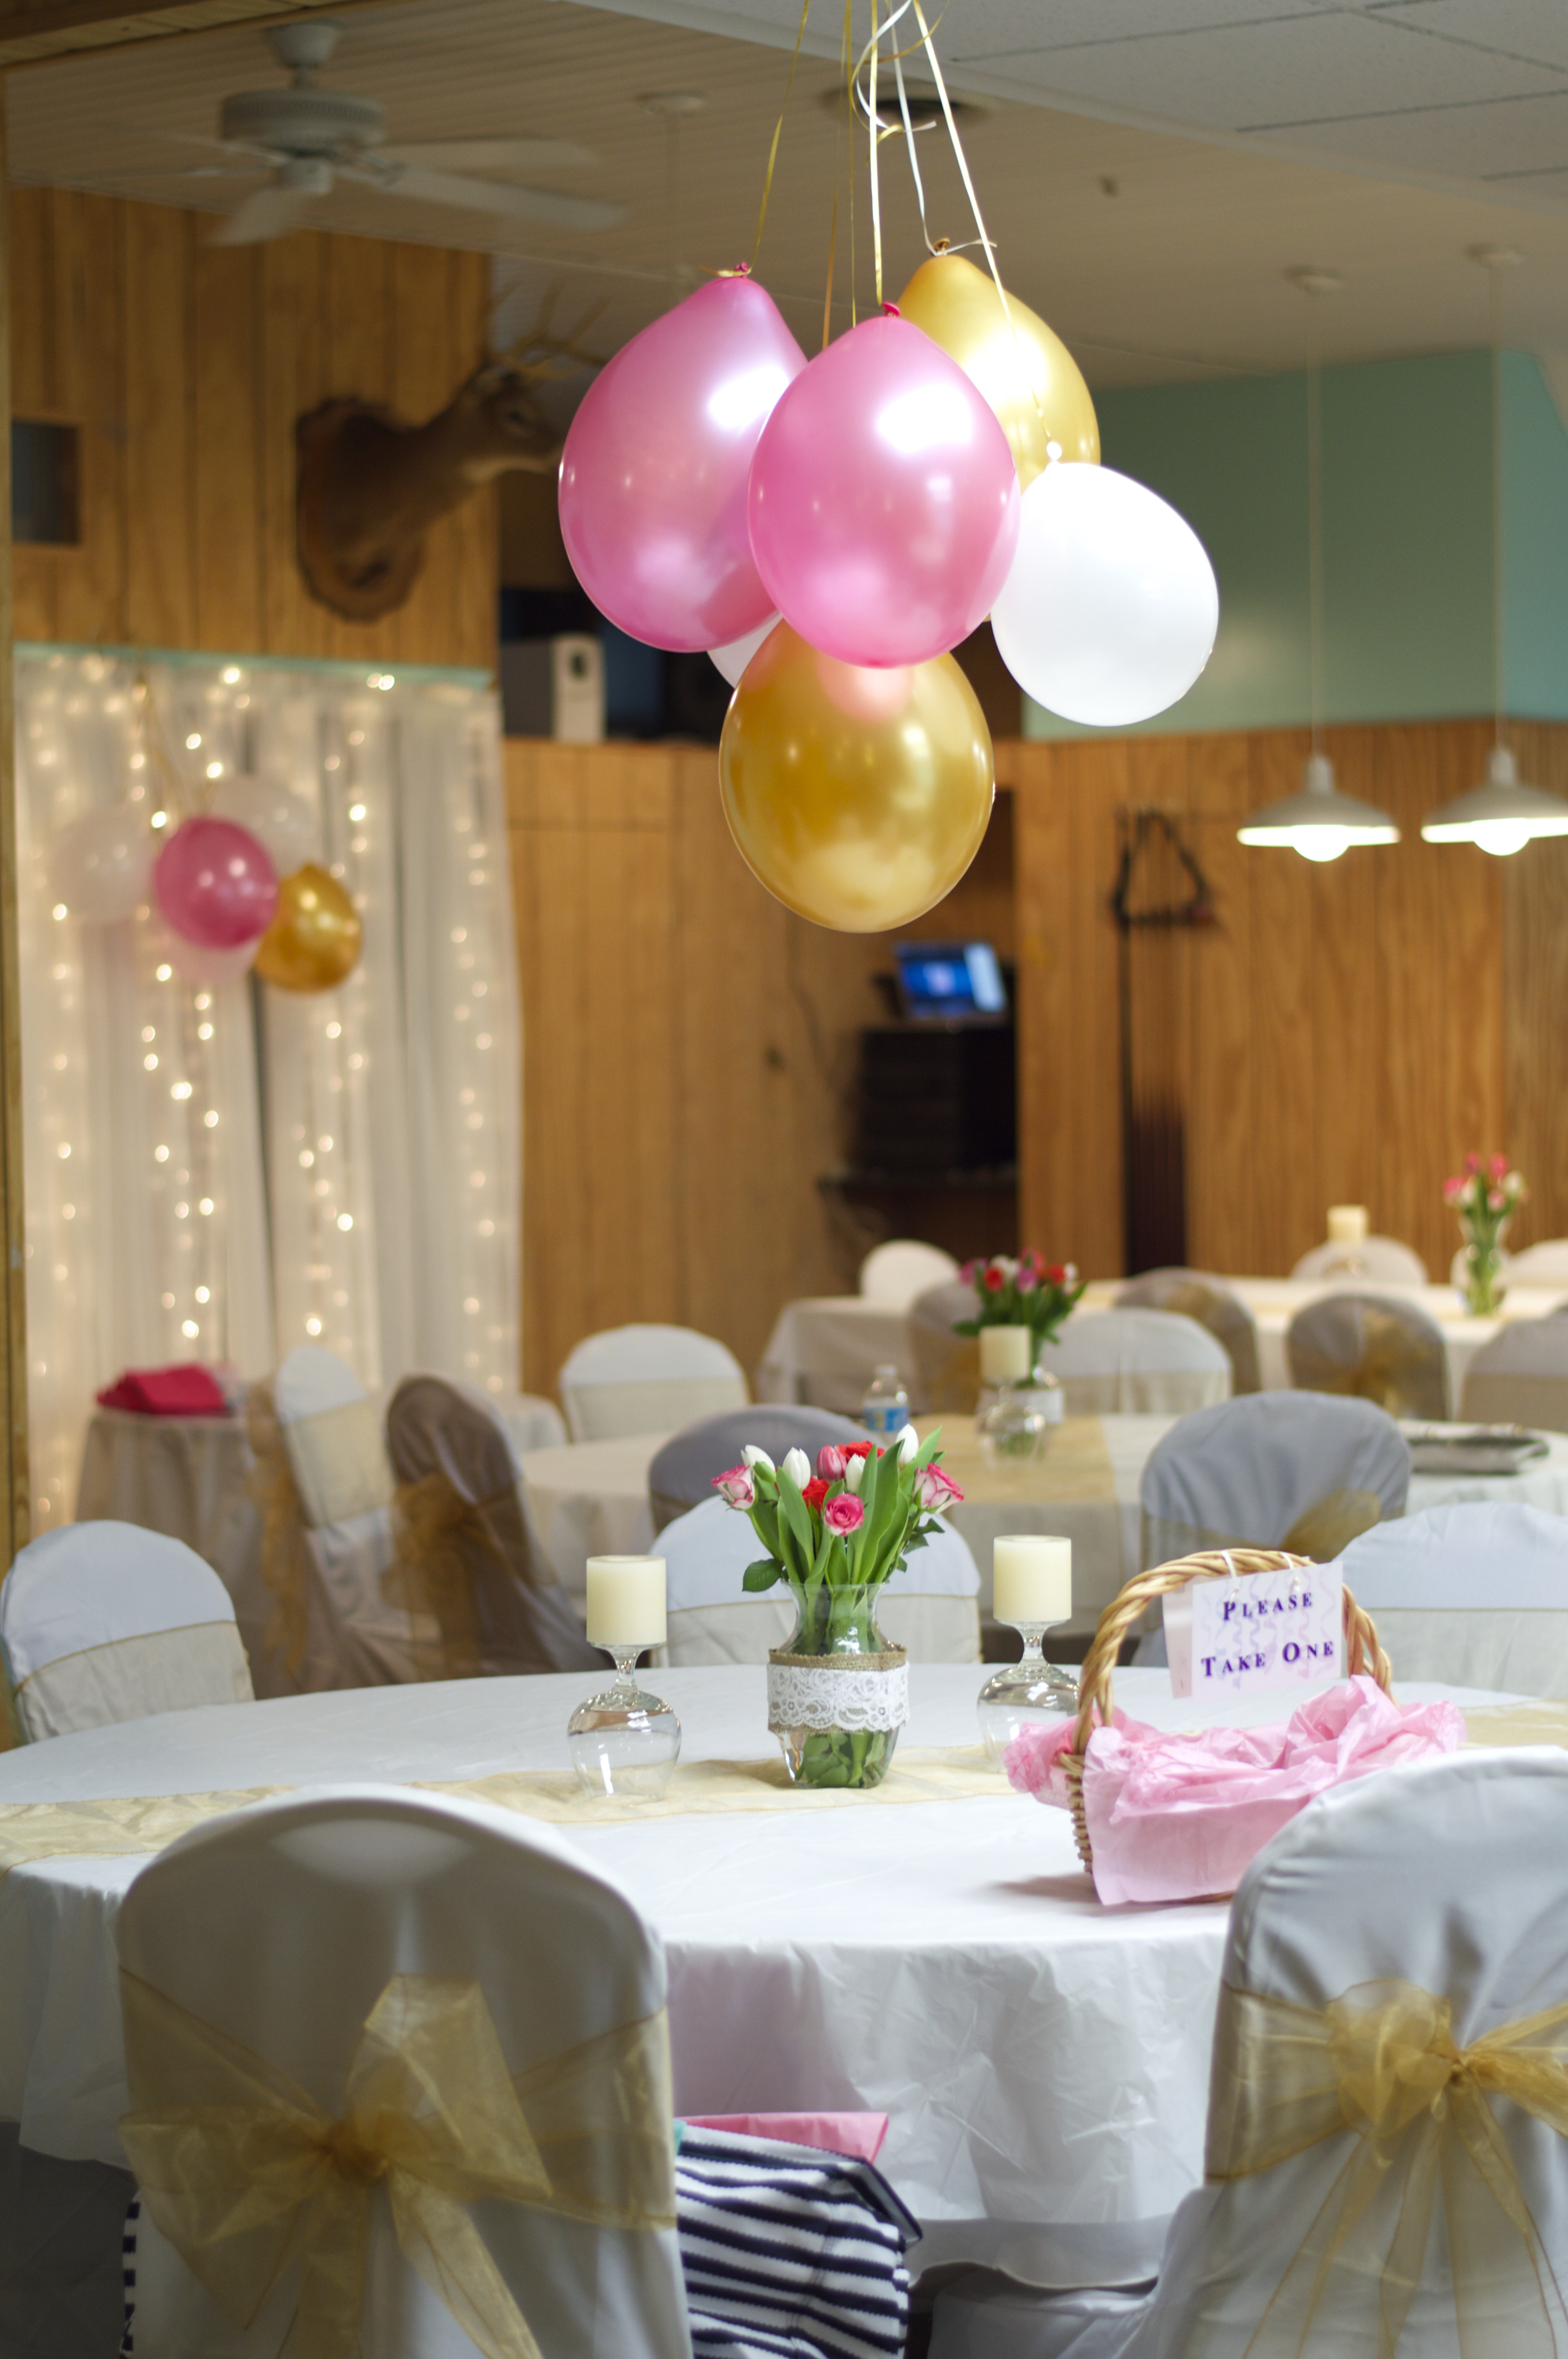 Best ideas about 90th Birthday Decorations . Save or Pin Grandma's 90th Birthday Party Now.